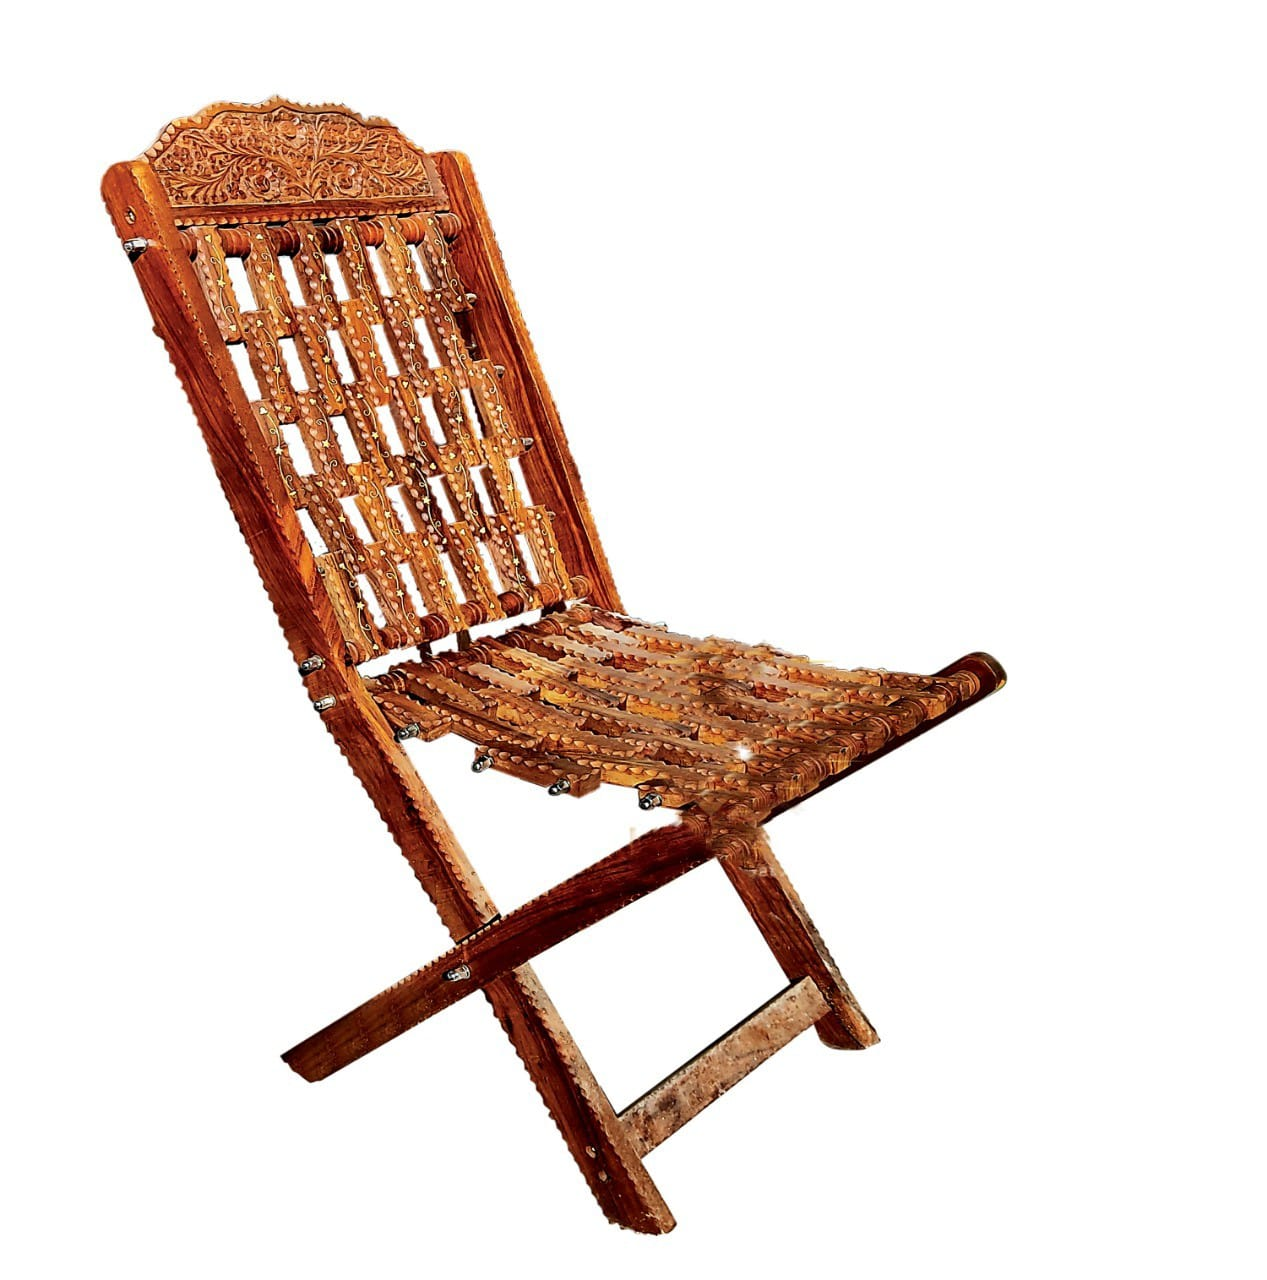 Wooden Chair With Iron